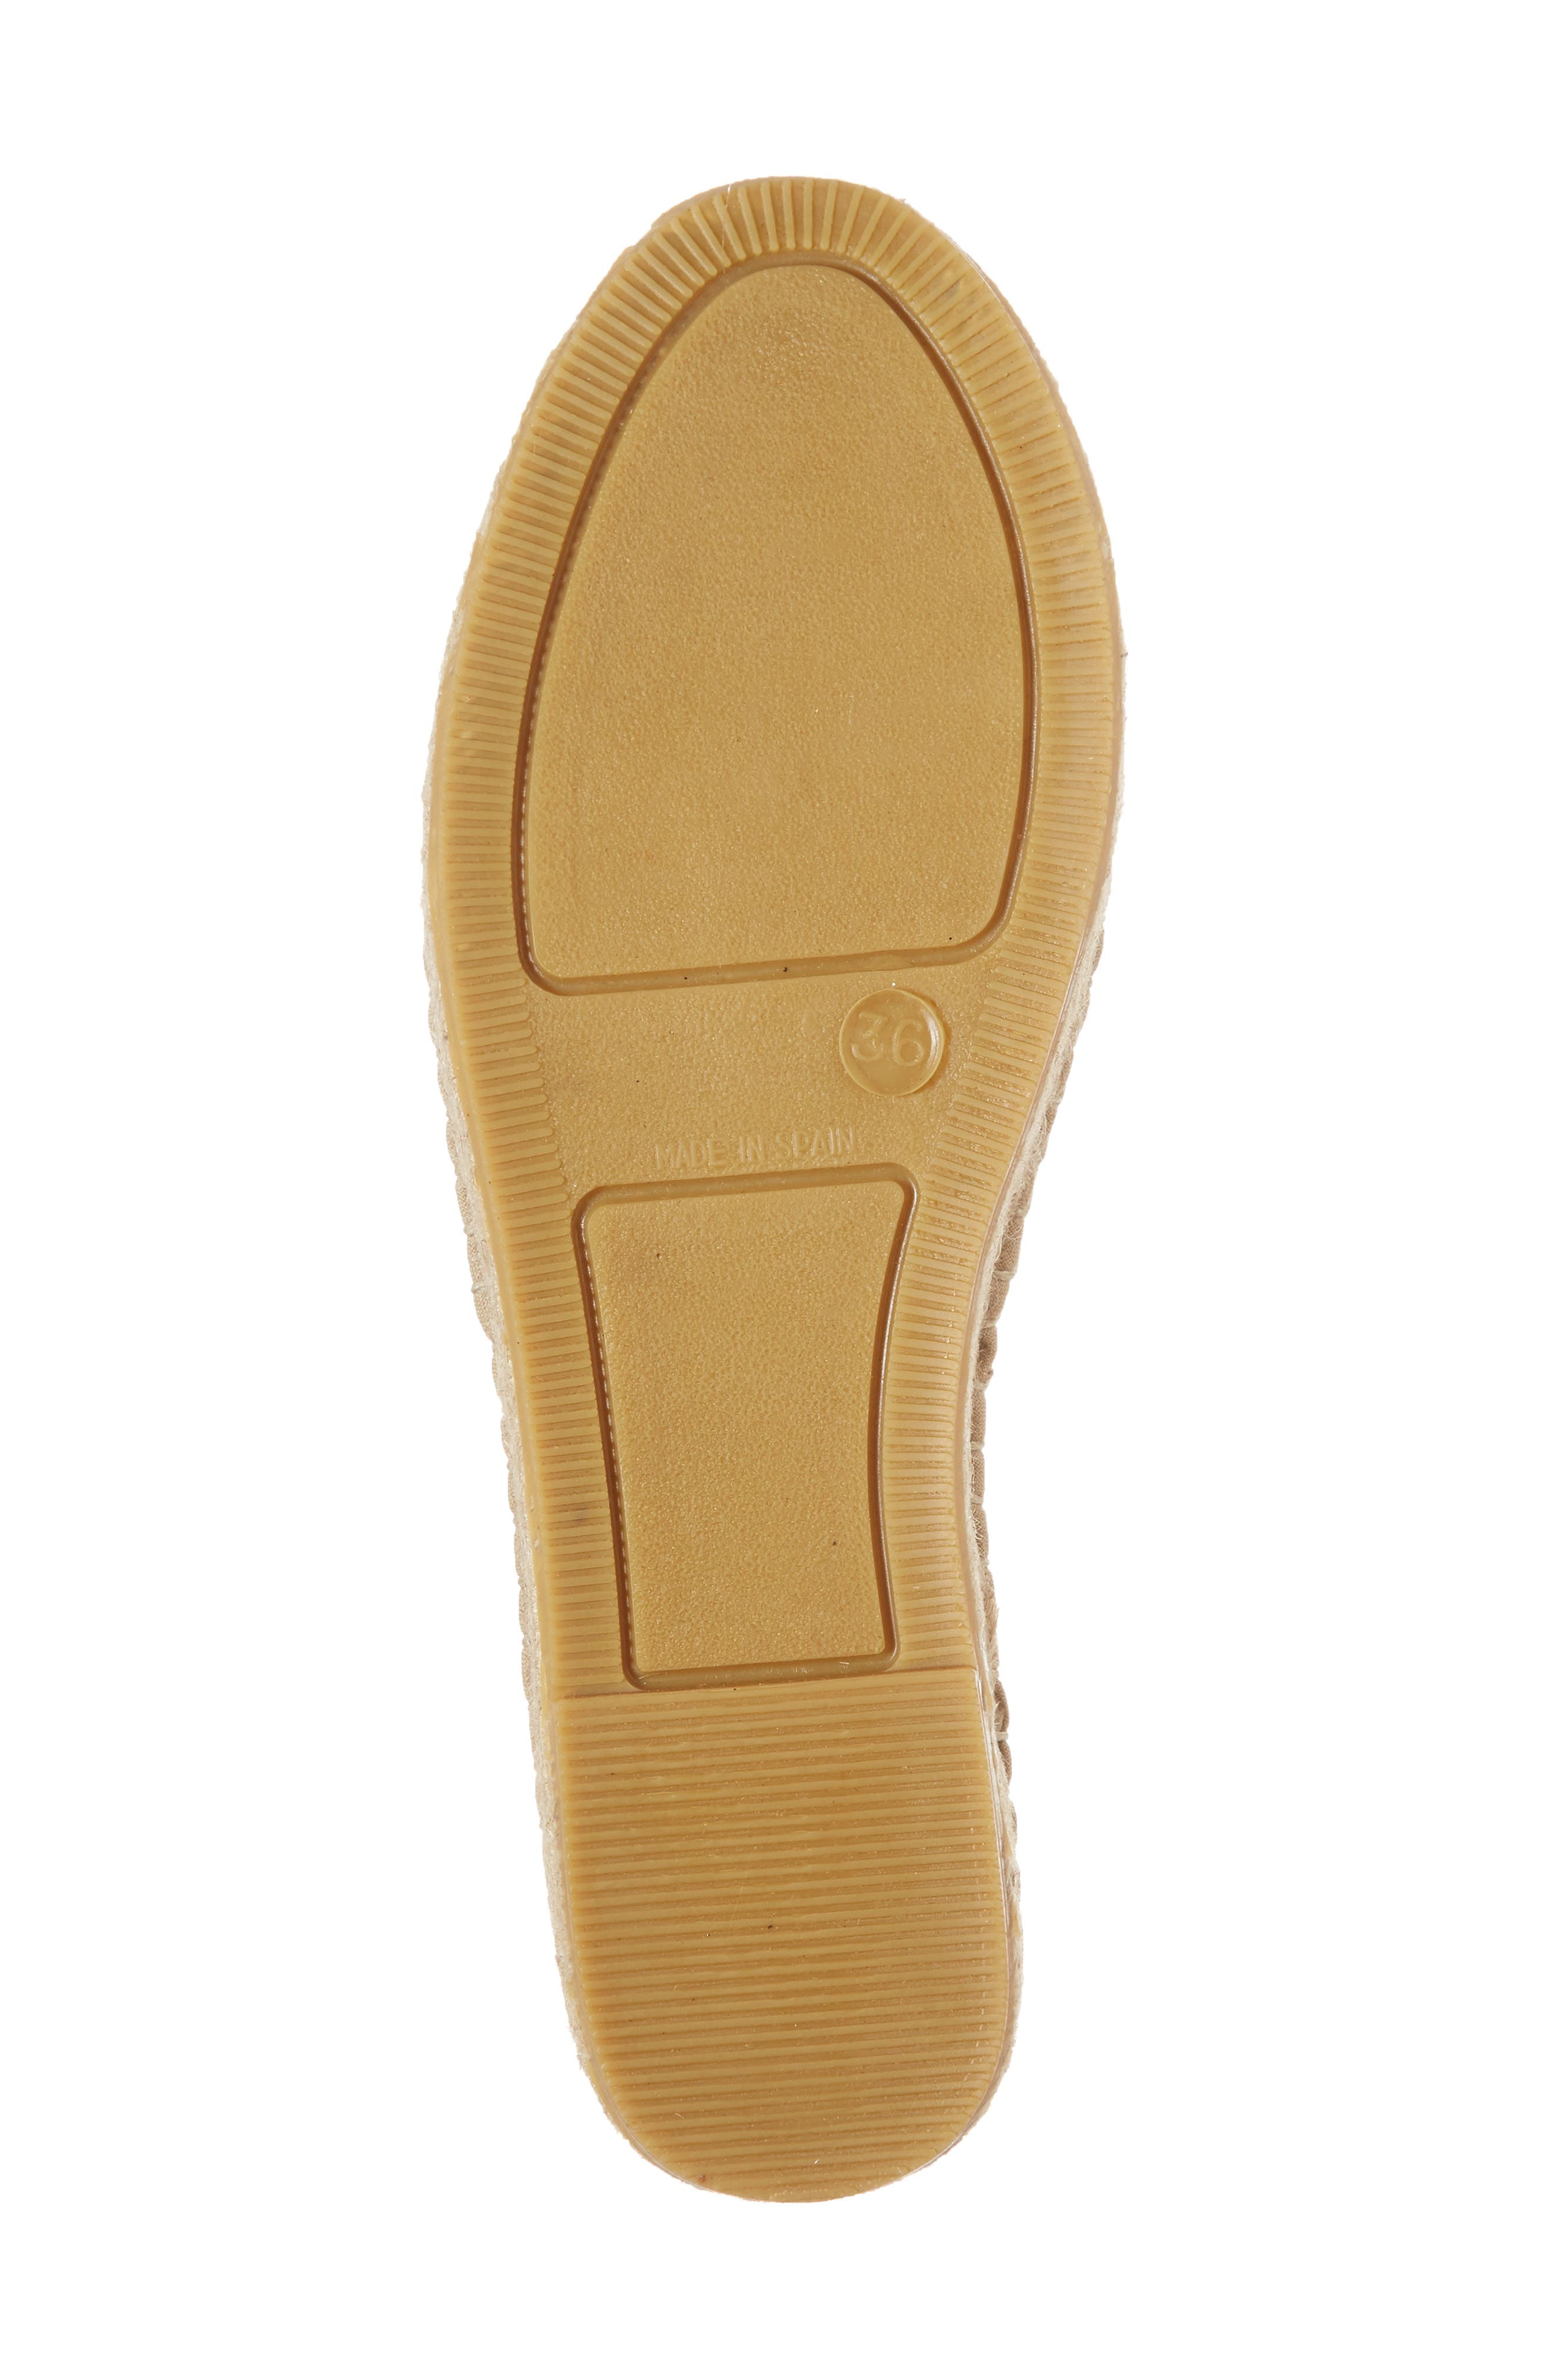 Florence Embroidered Platform Espadrille Sneaker,                             Alternate thumbnail 6, color,                             TOBACCO FABRIC